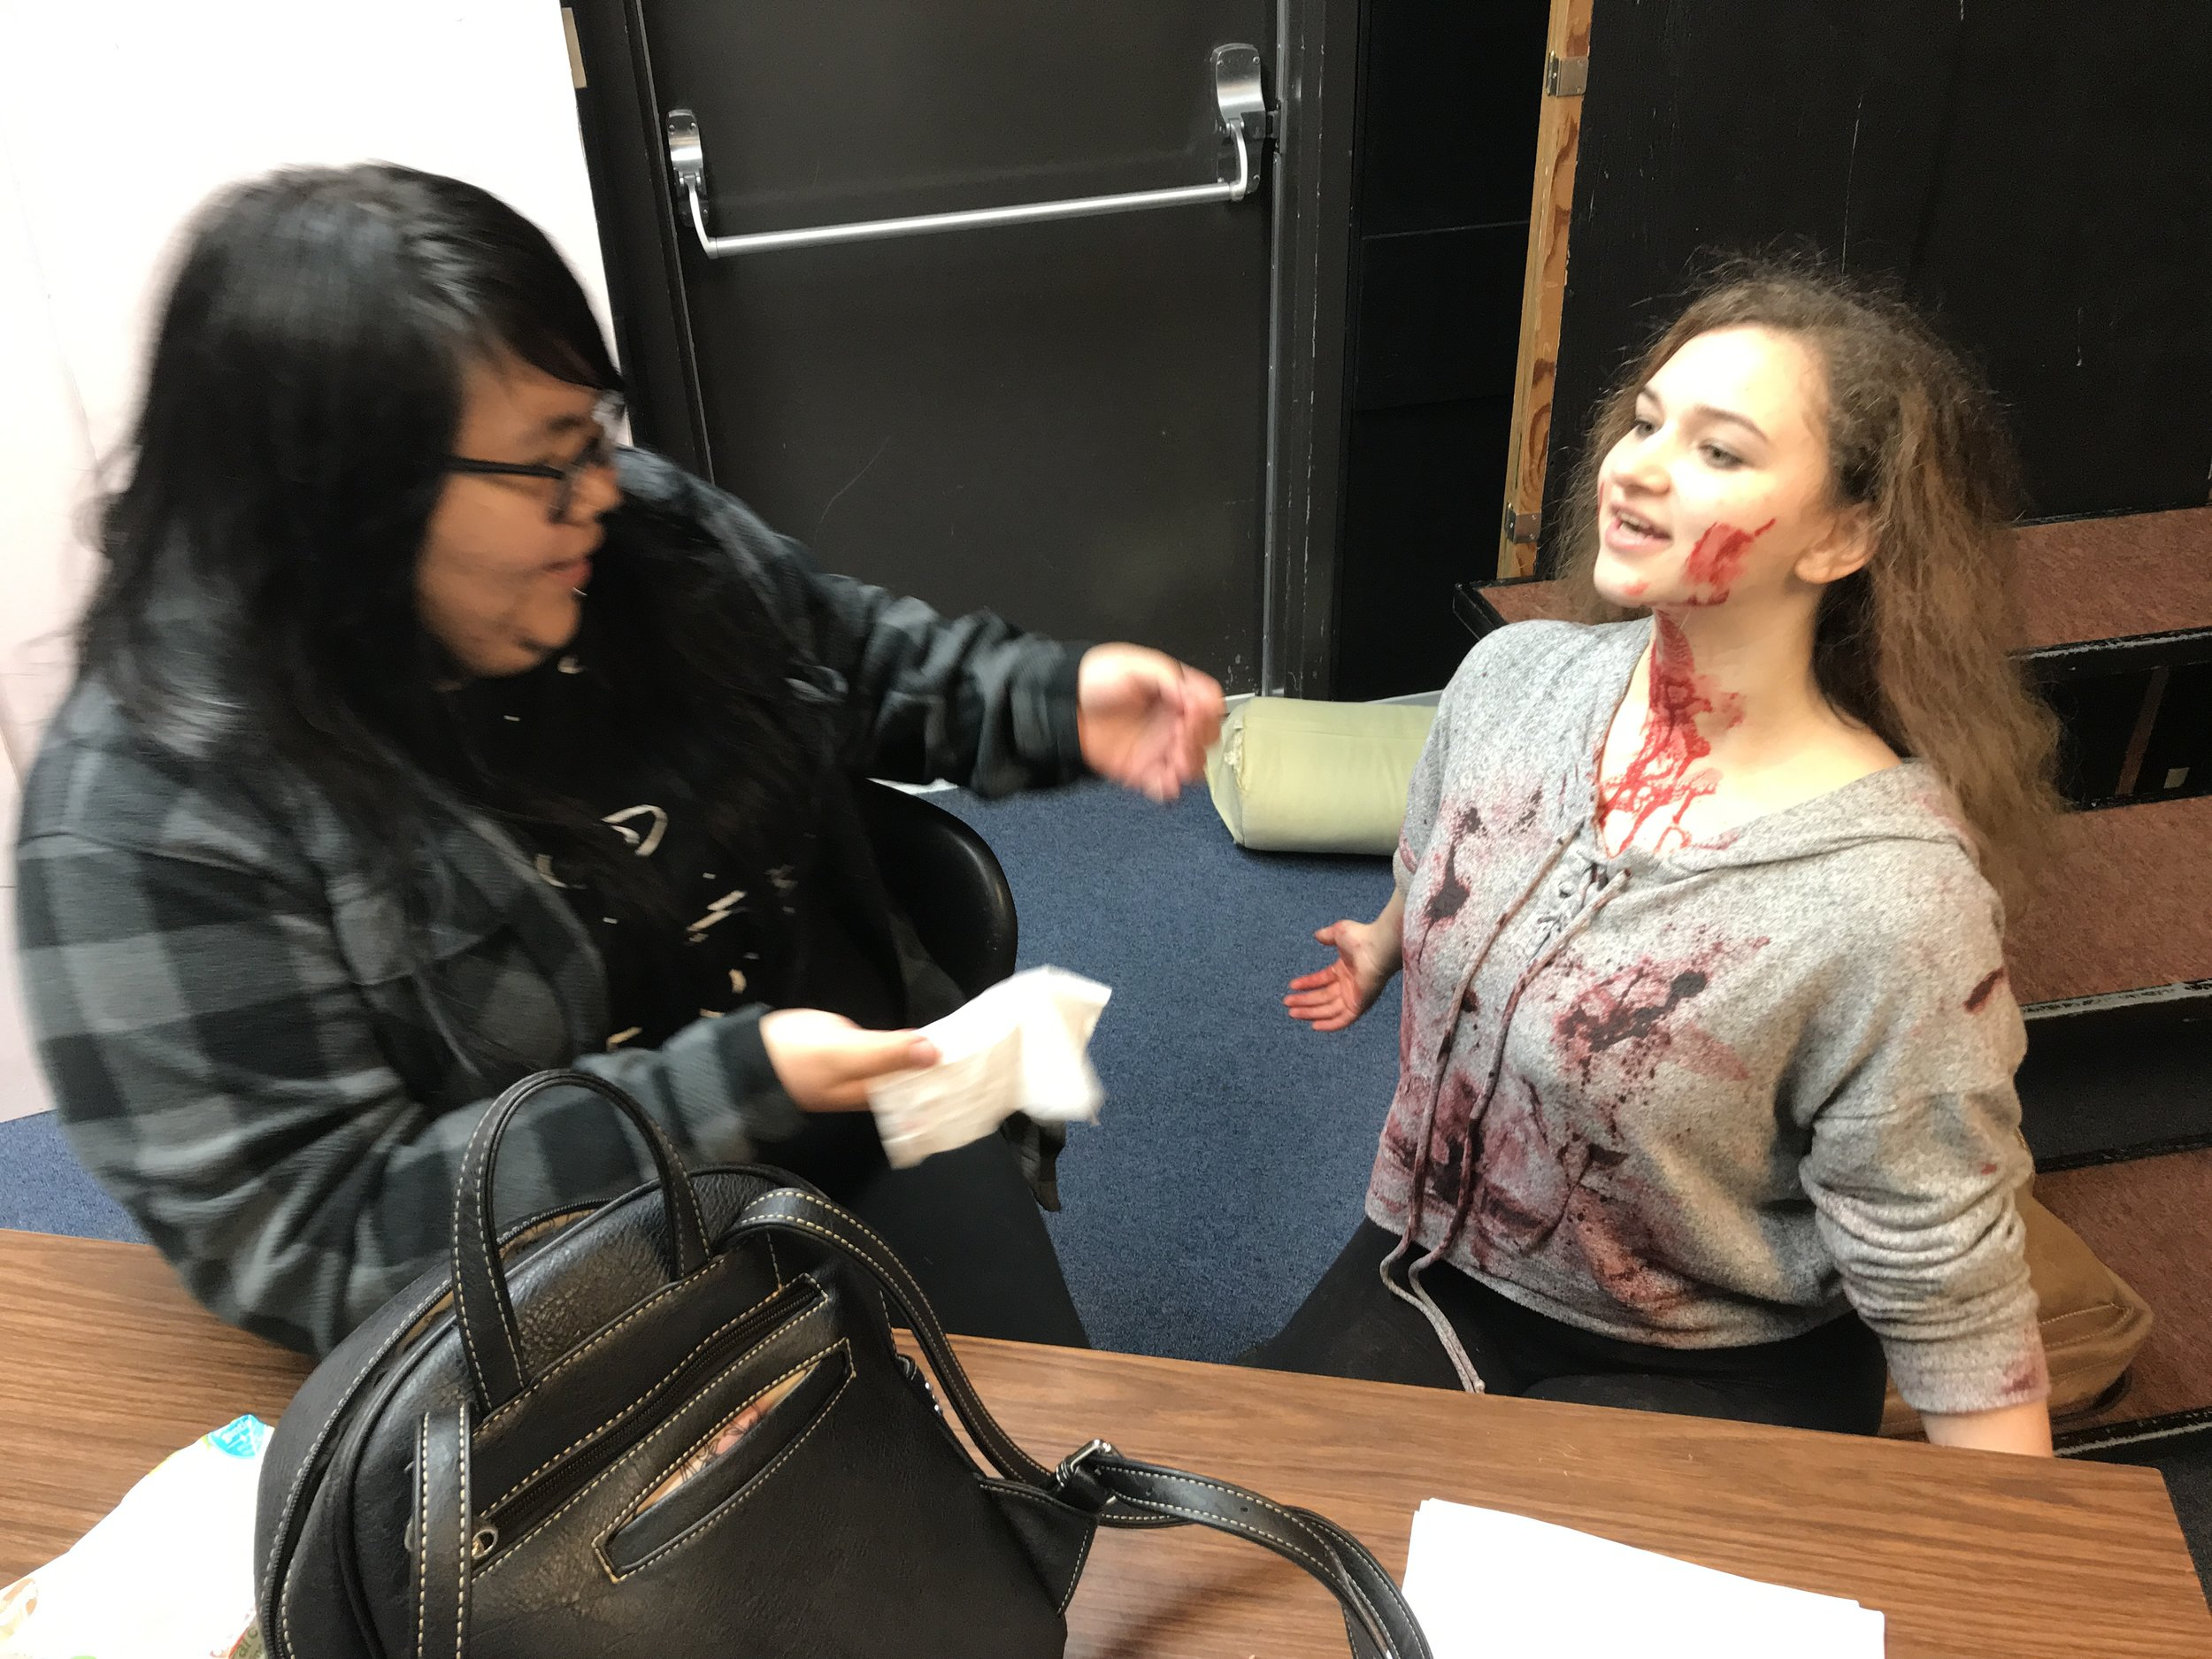 Makeup artist extraordinaire, Niccola, cleans up the sticky blood from Jacey #tasteslikepeppermint